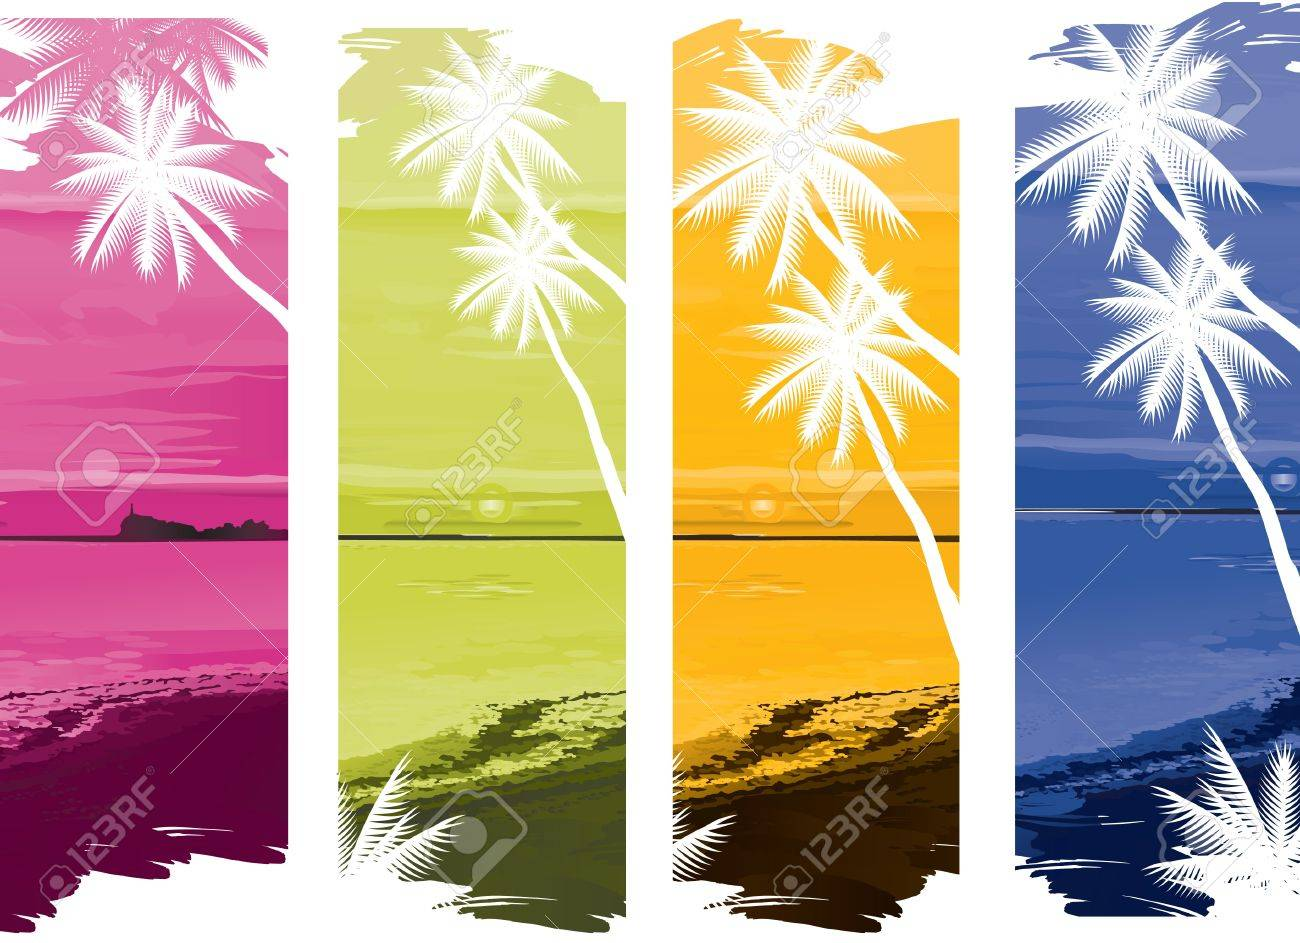 vector illustration contains the image of a set of colorful tropical ocean banners Stock Vector - 12962892